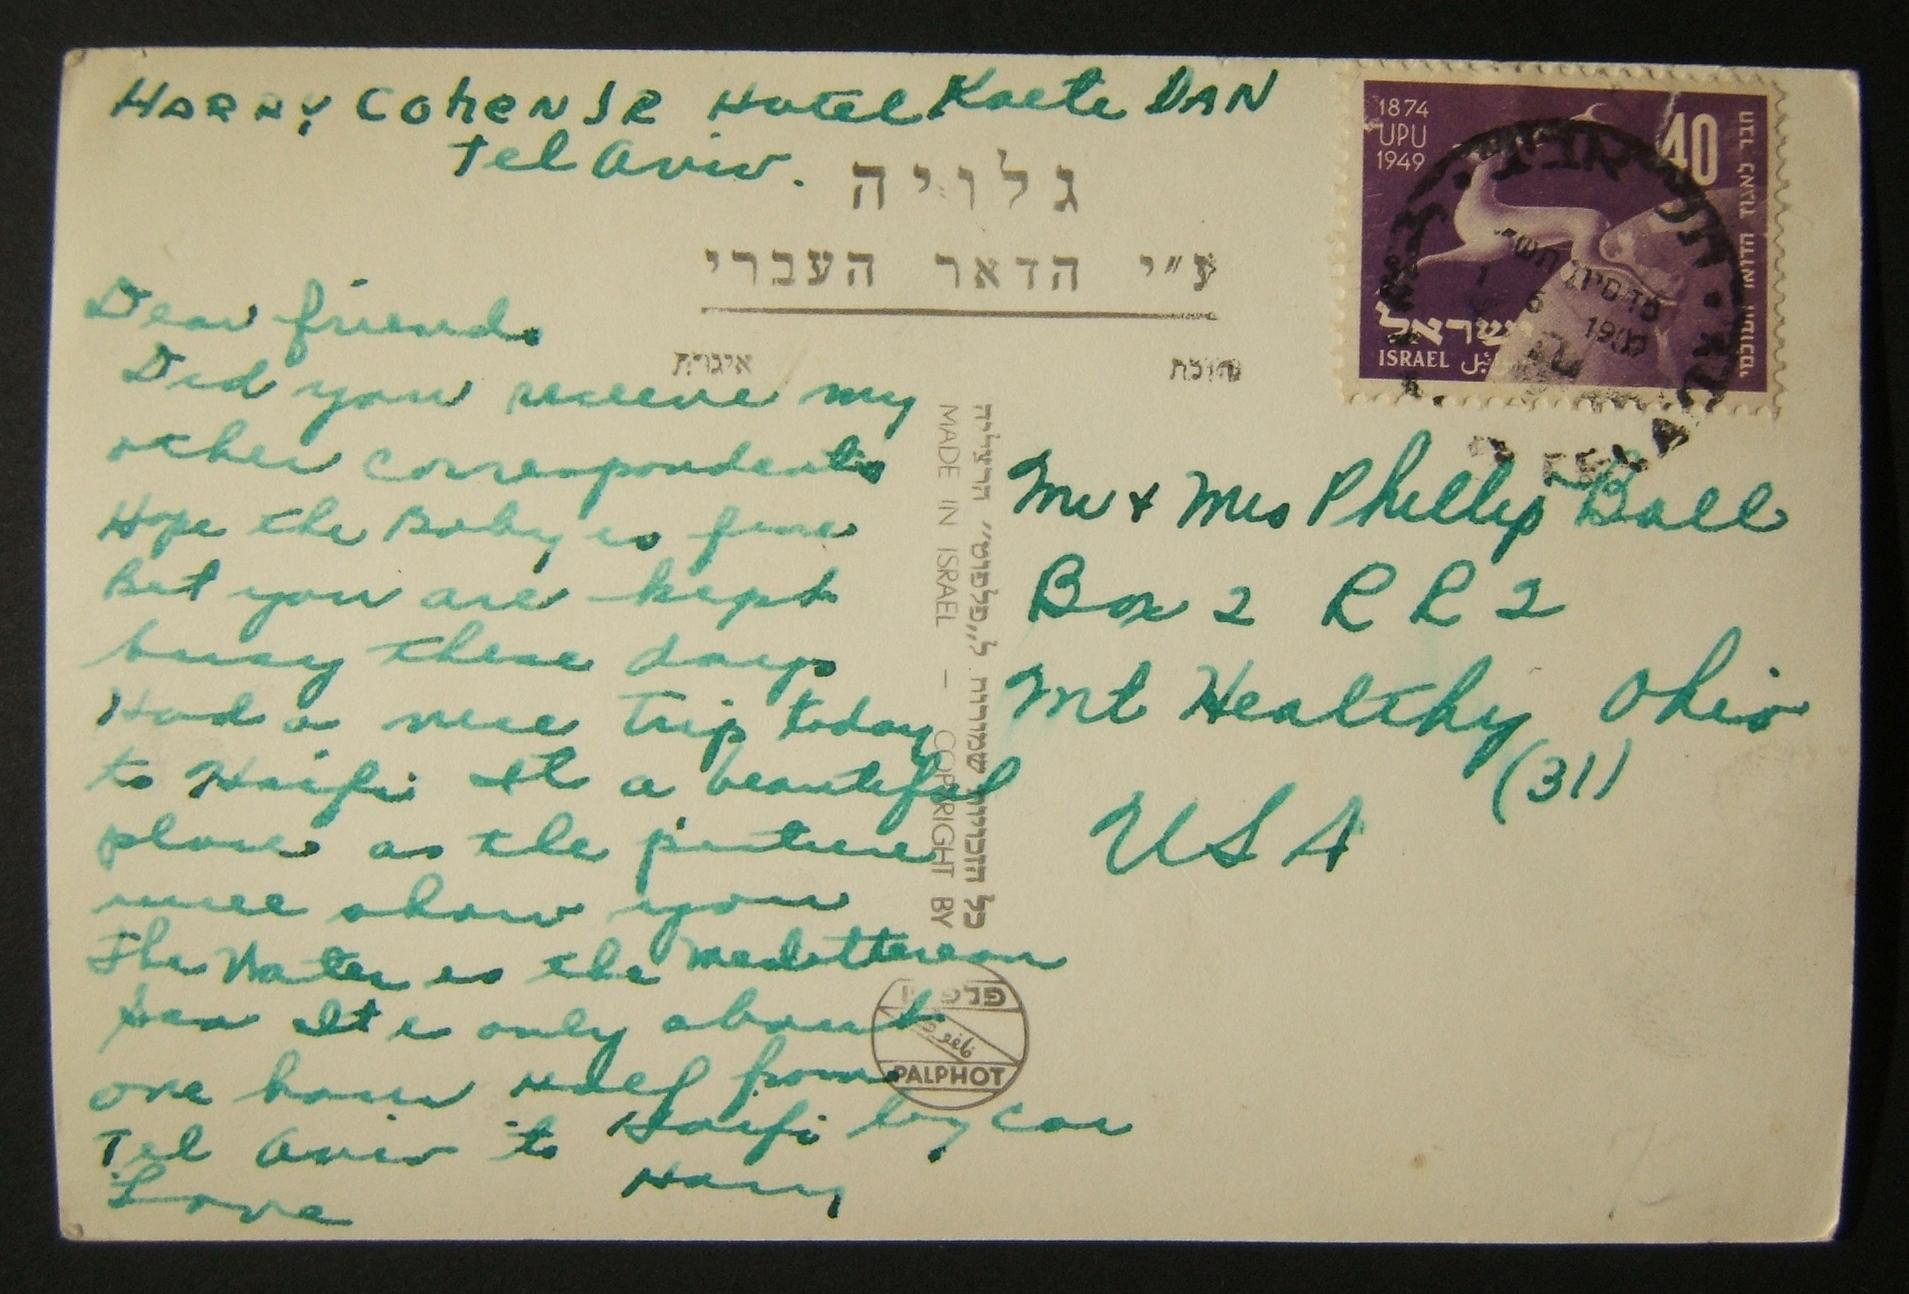 1950 UPU / rates & routes: 1-6-1950 surface mailed 'Palphot' ppc of Haifa Kingsway ex TLV to OHIO franked 40pr at the SU-2 period rate of 15pr (with 25pr overcharged - sender is to